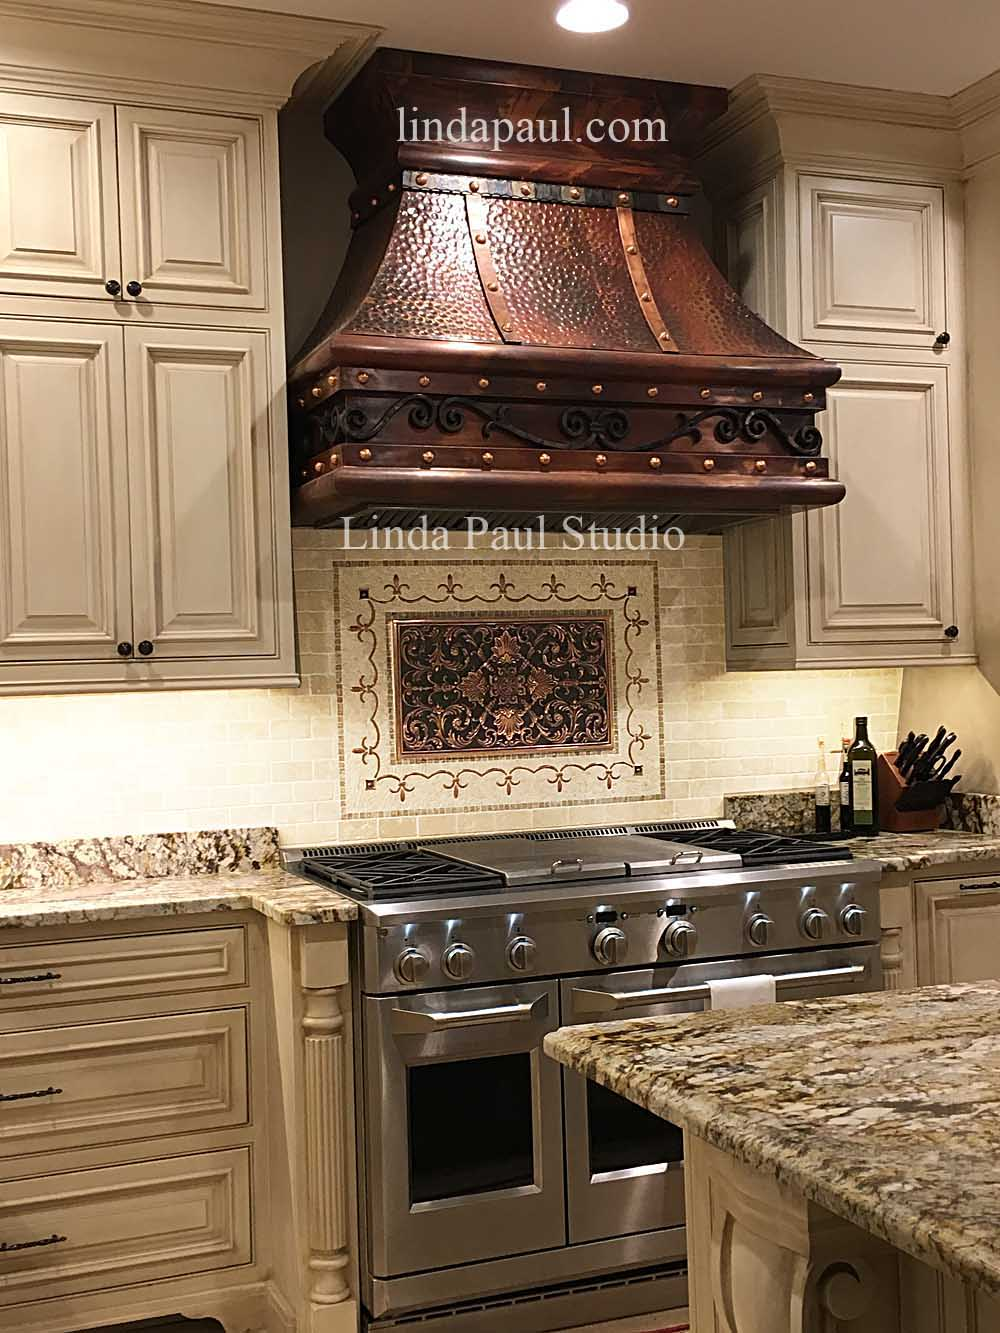 kitchen backsplash ideas gallery of tile backsplash pictures ravenna copper backsplash medallion and copper hood